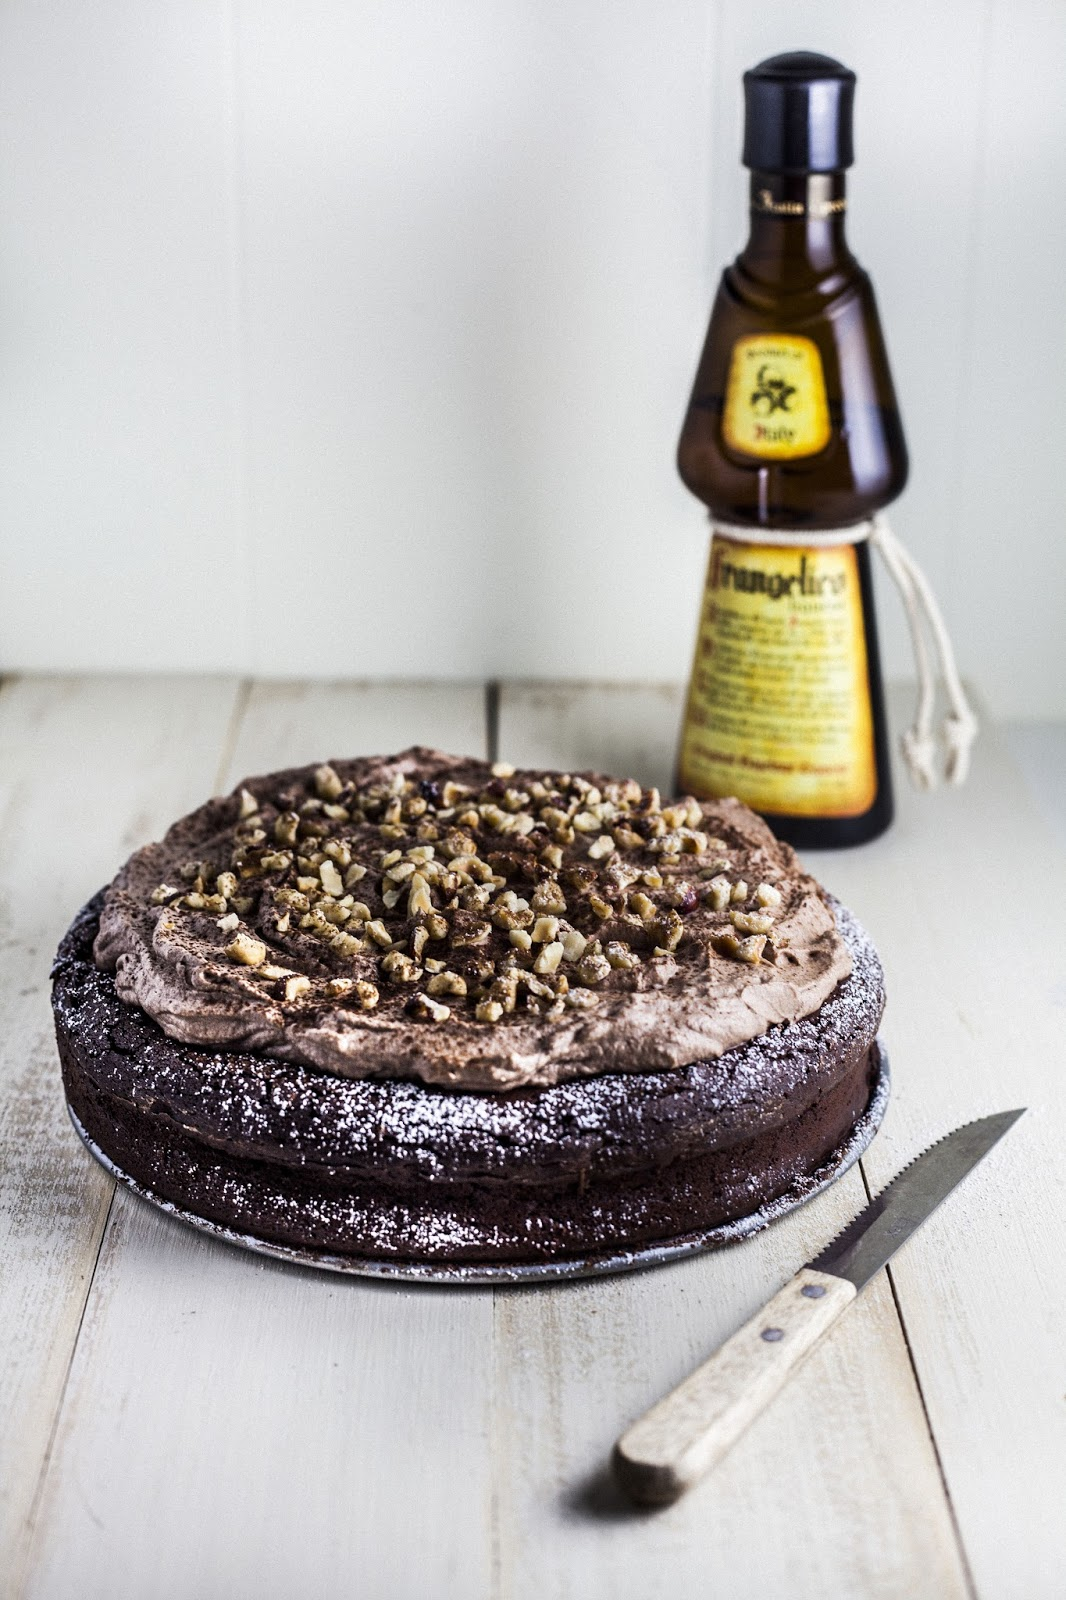 to bring you guys this awesome flourless chocolate hazelnut cake